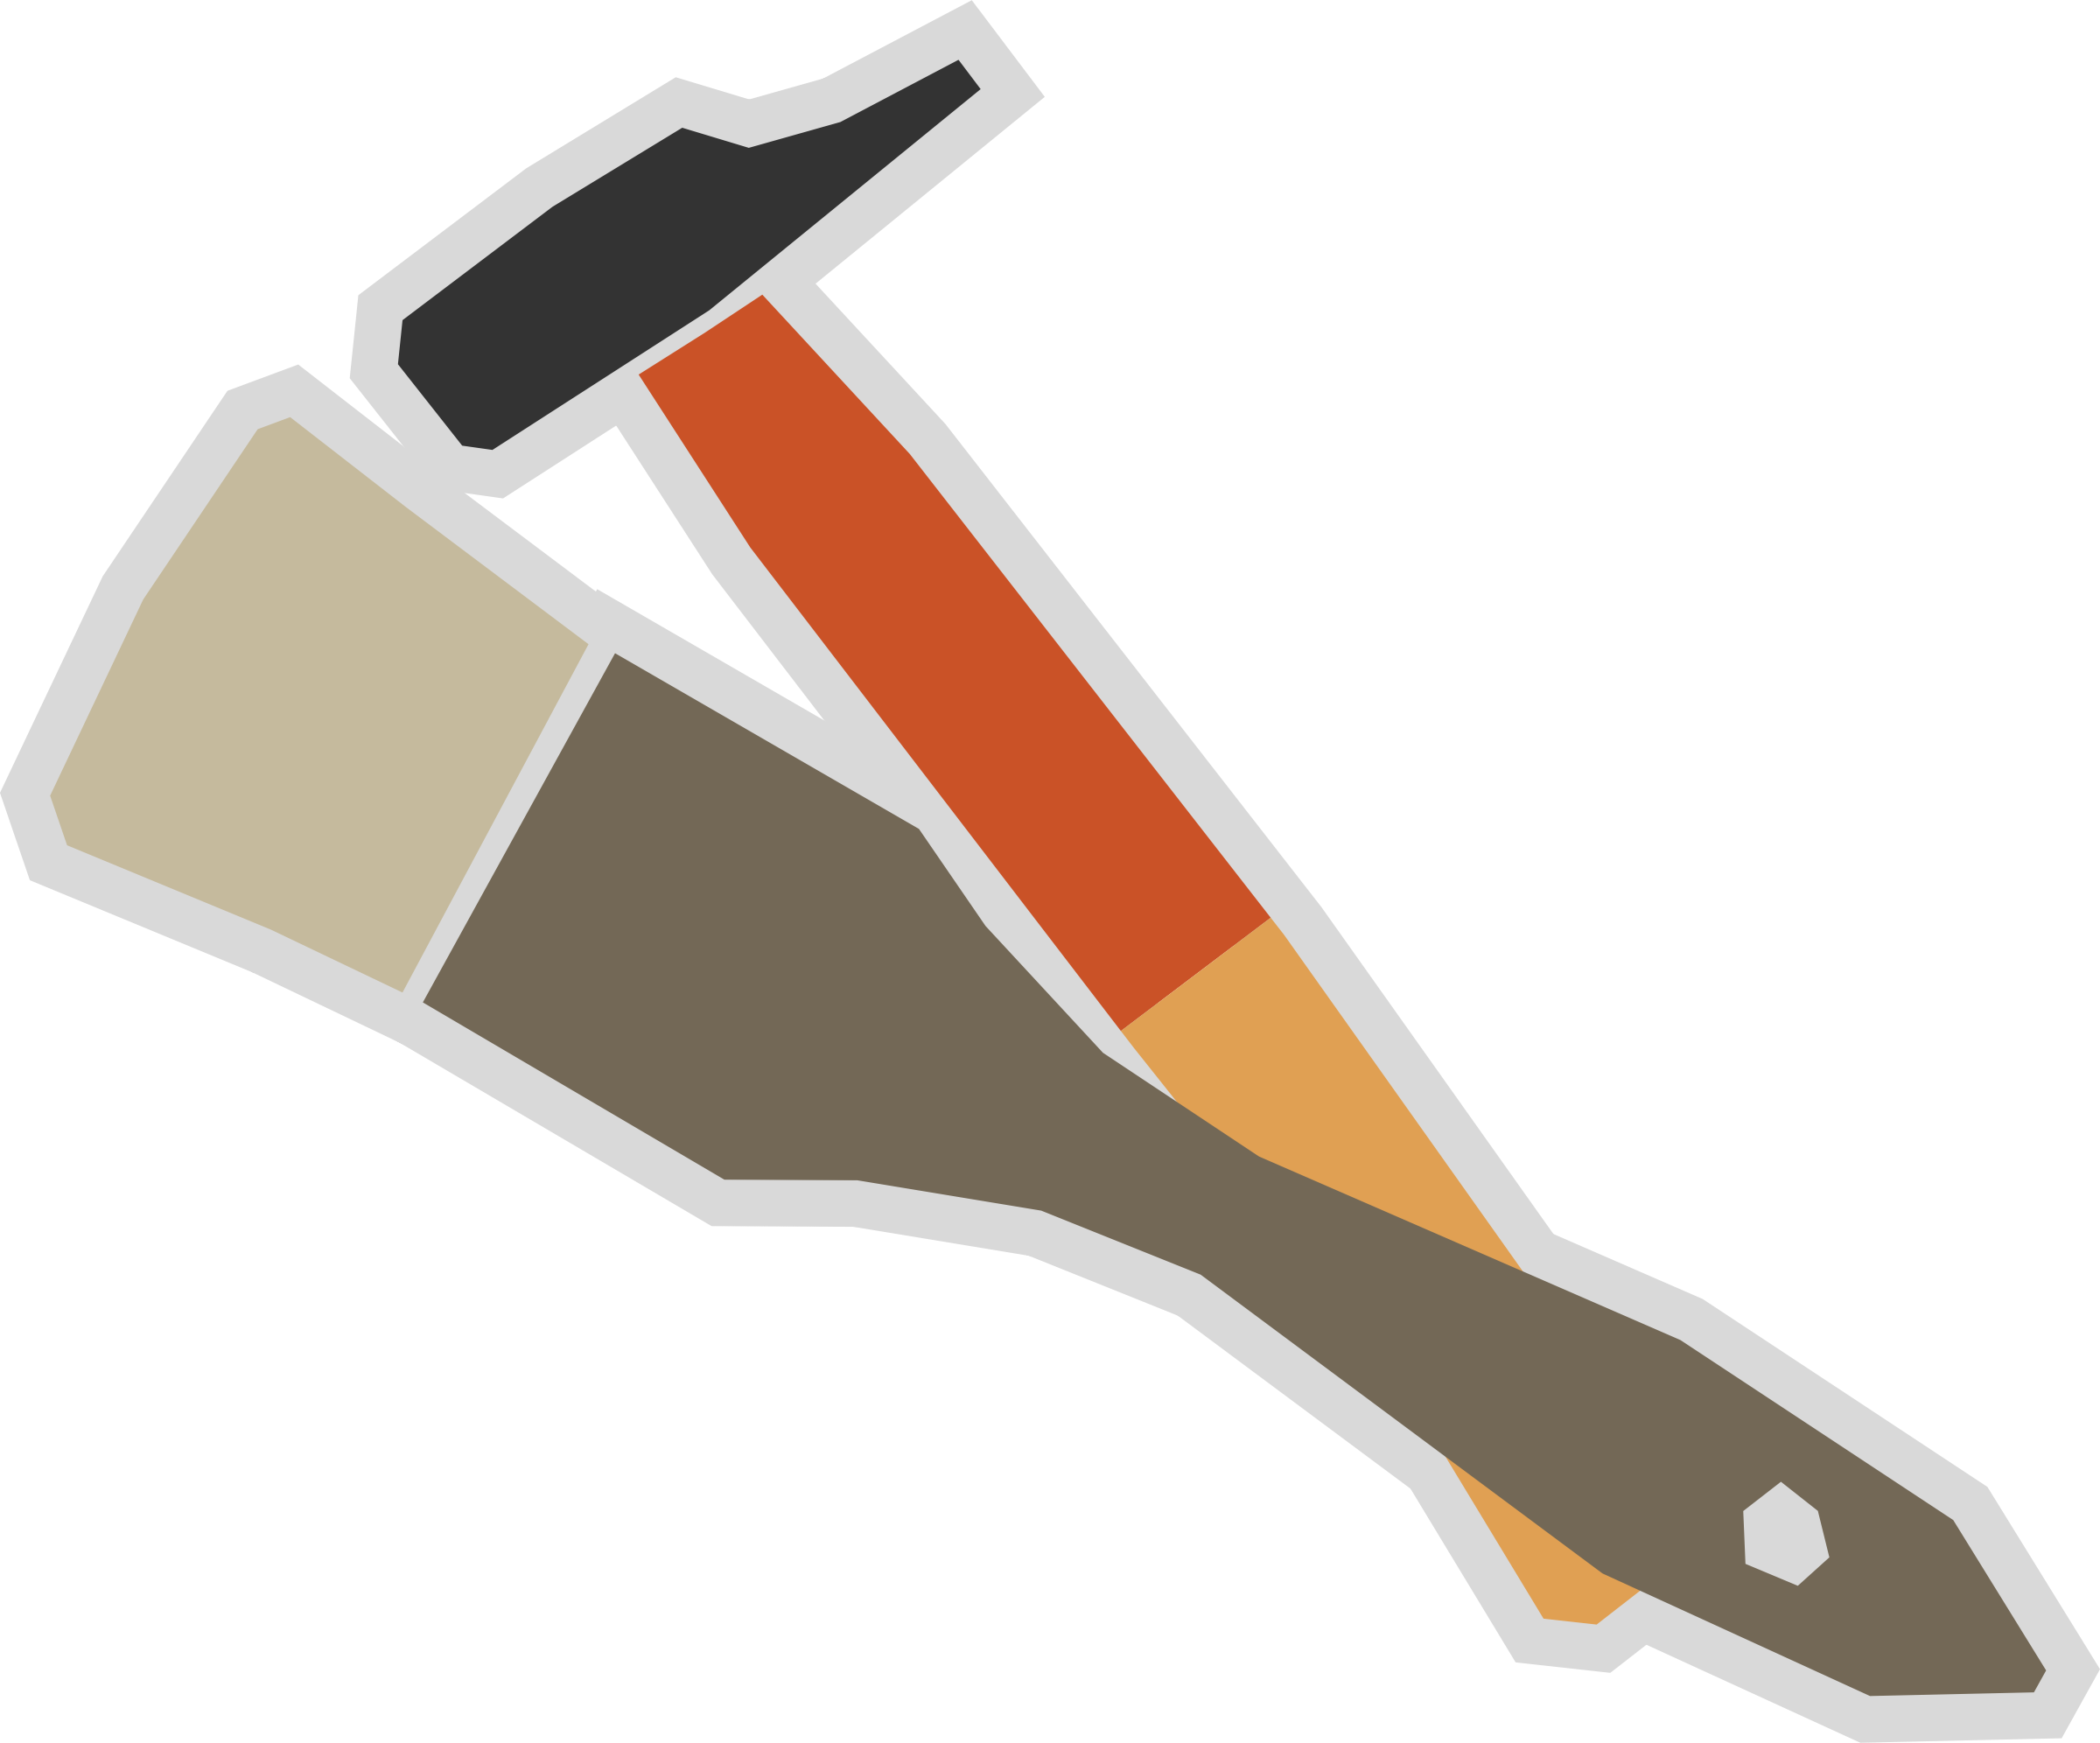 2400x1992 Brush And Hammer Vector Clipart Image